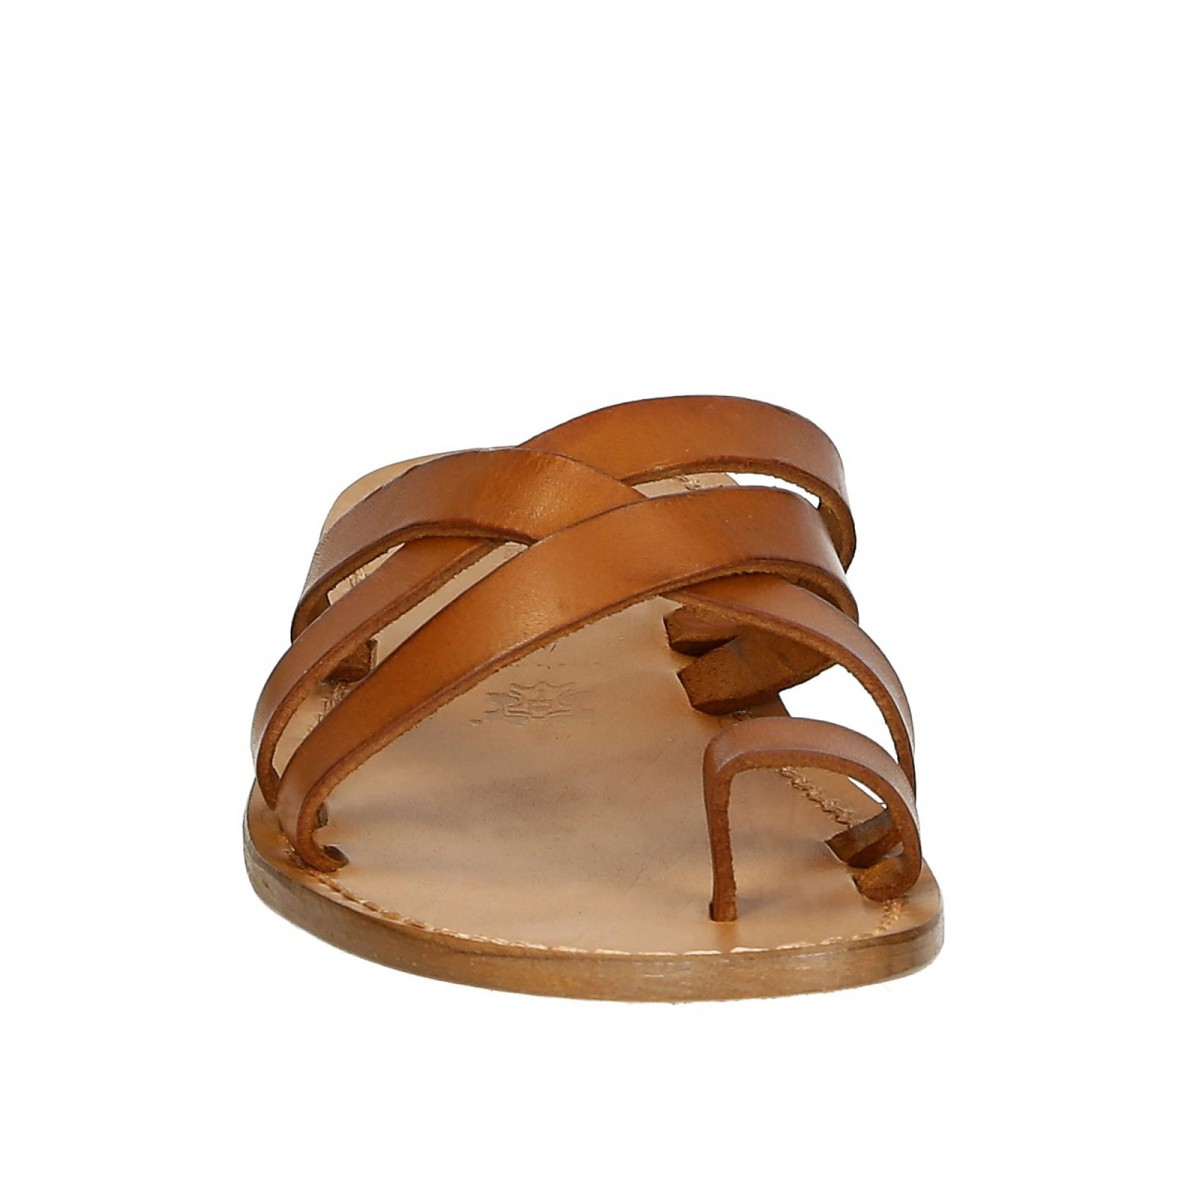 Mens Leather Thong Sandals Handmade In Italy In Vintage